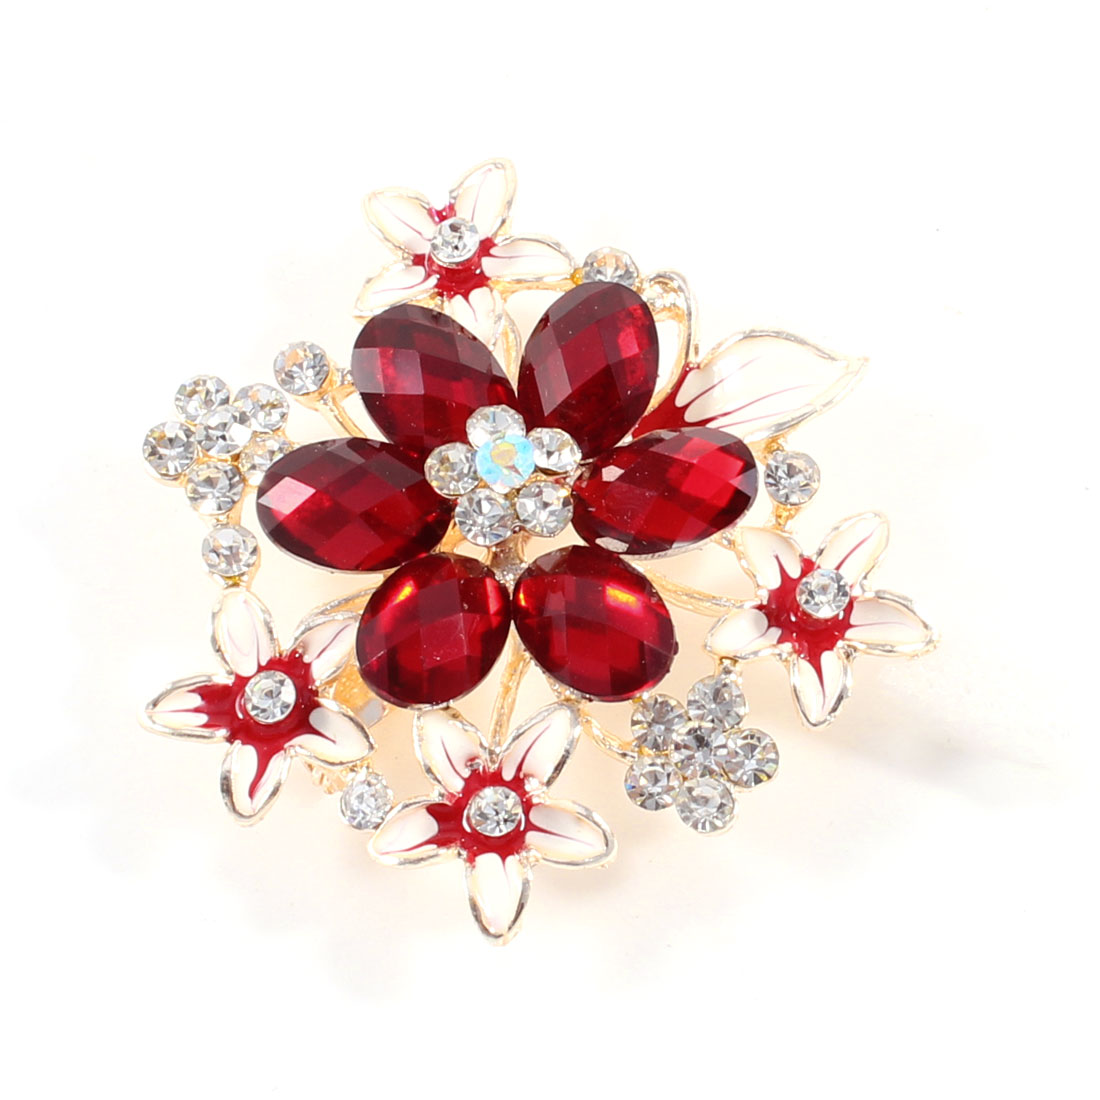 Woman Burgundy Glistening Rhinestones Decorative Metal Flower Pin Brooch